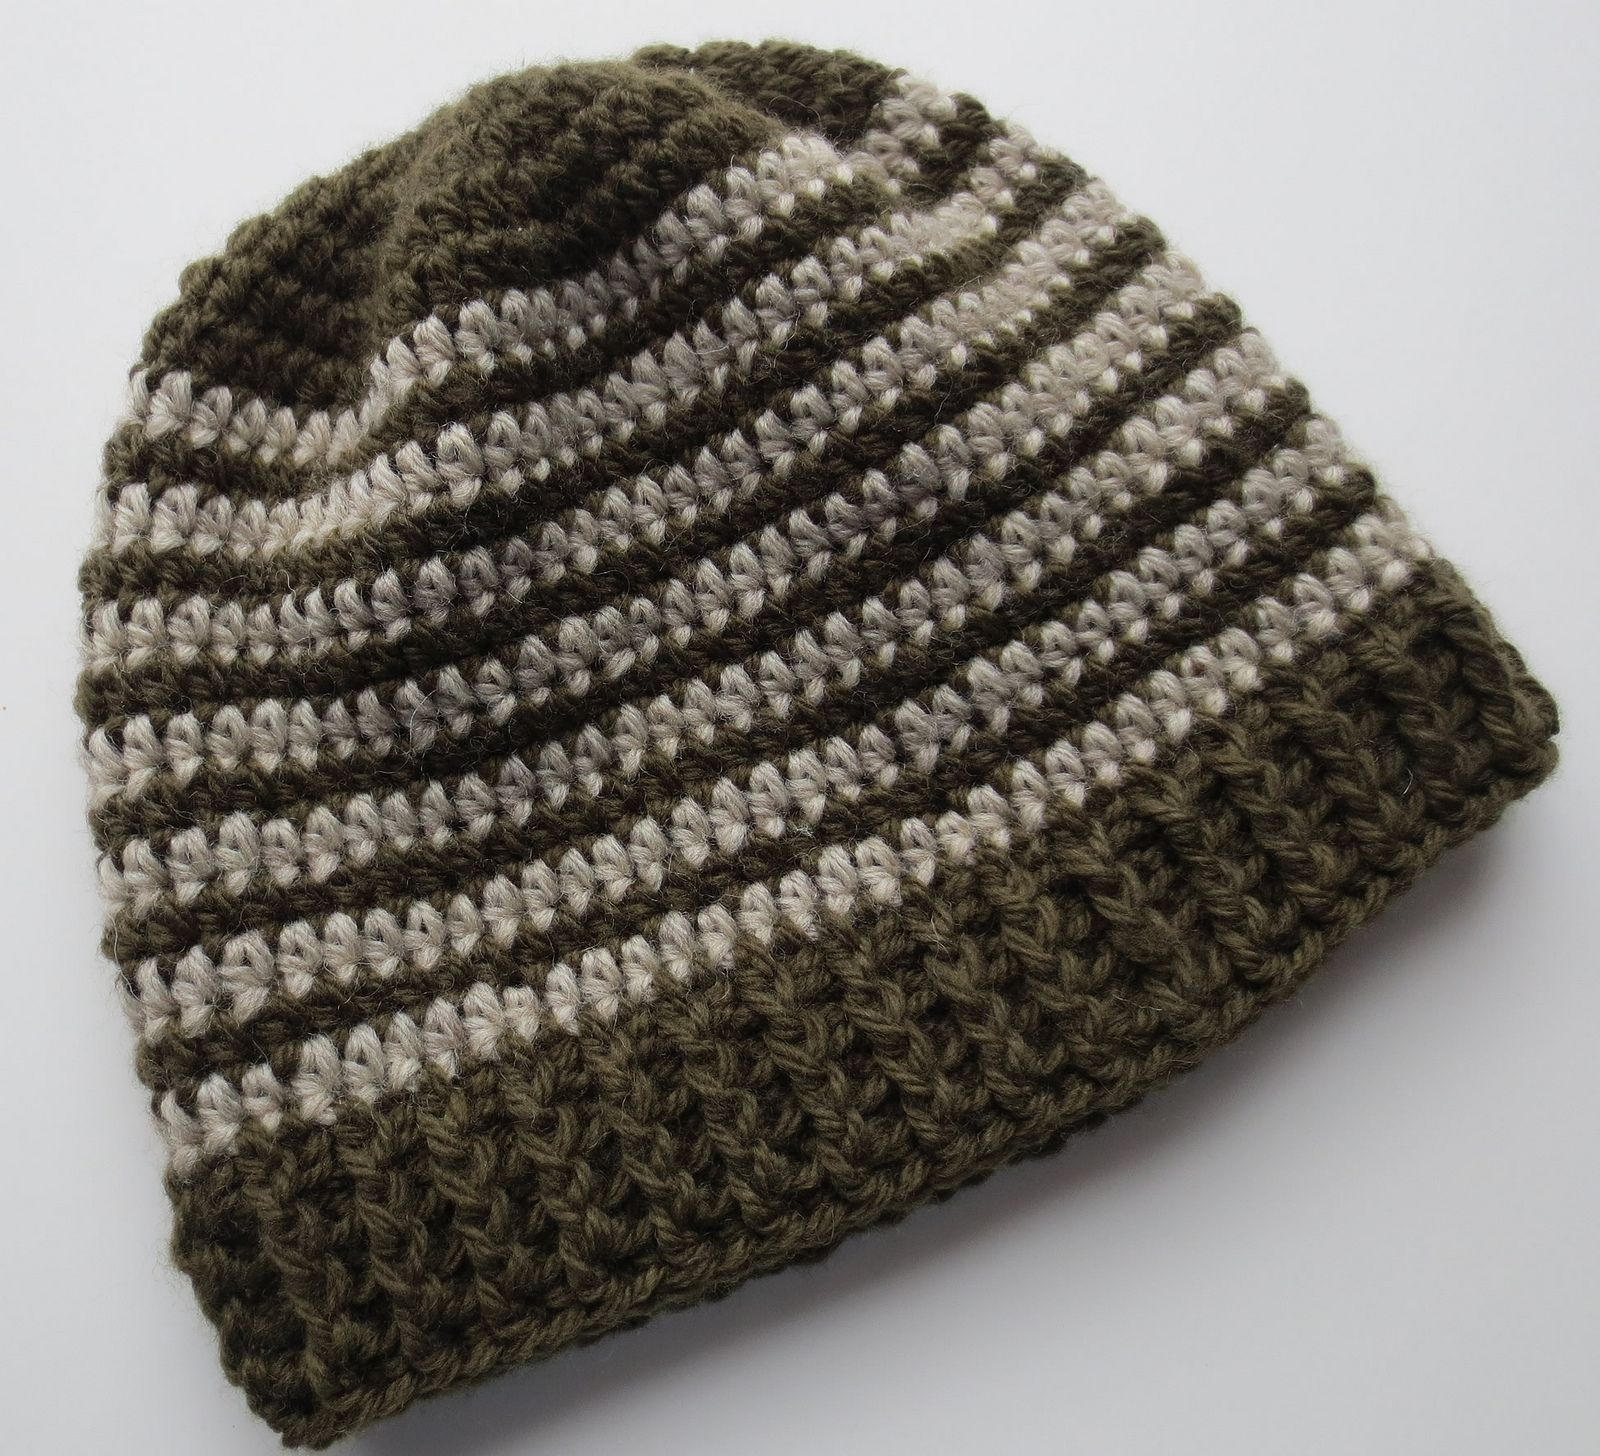 Crocheted Ribbed Hat Pattern | My Recycled Bags.com | Crochet - hats ...